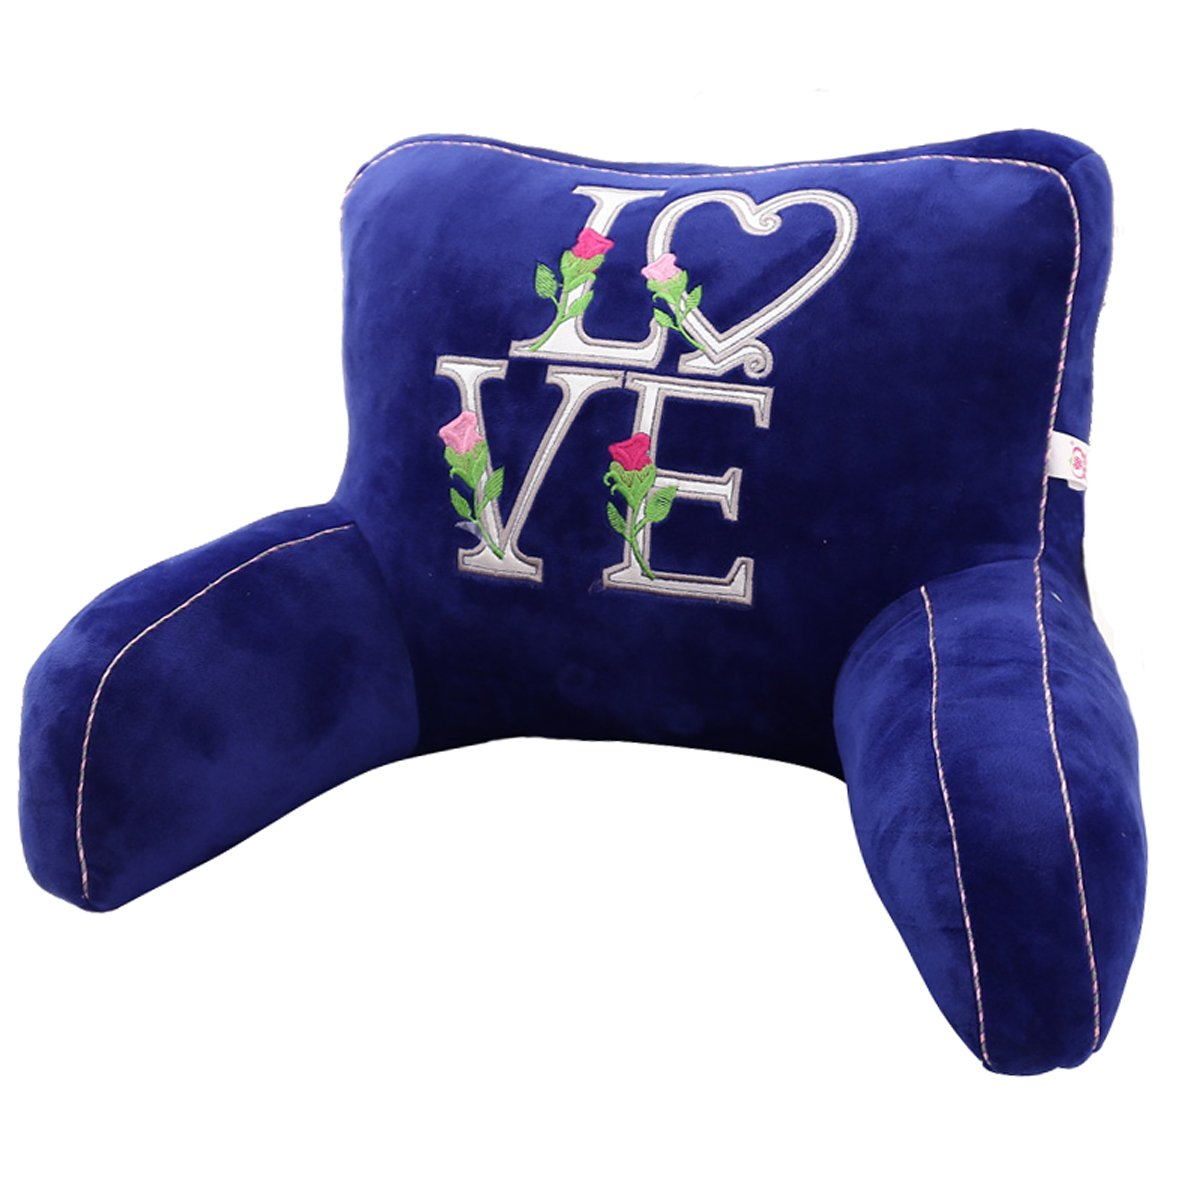 Adorable Blue Love Roses Lumbar Support Backrest Pillow Waist Seat Back Cushion Pillow in Home Office School Car